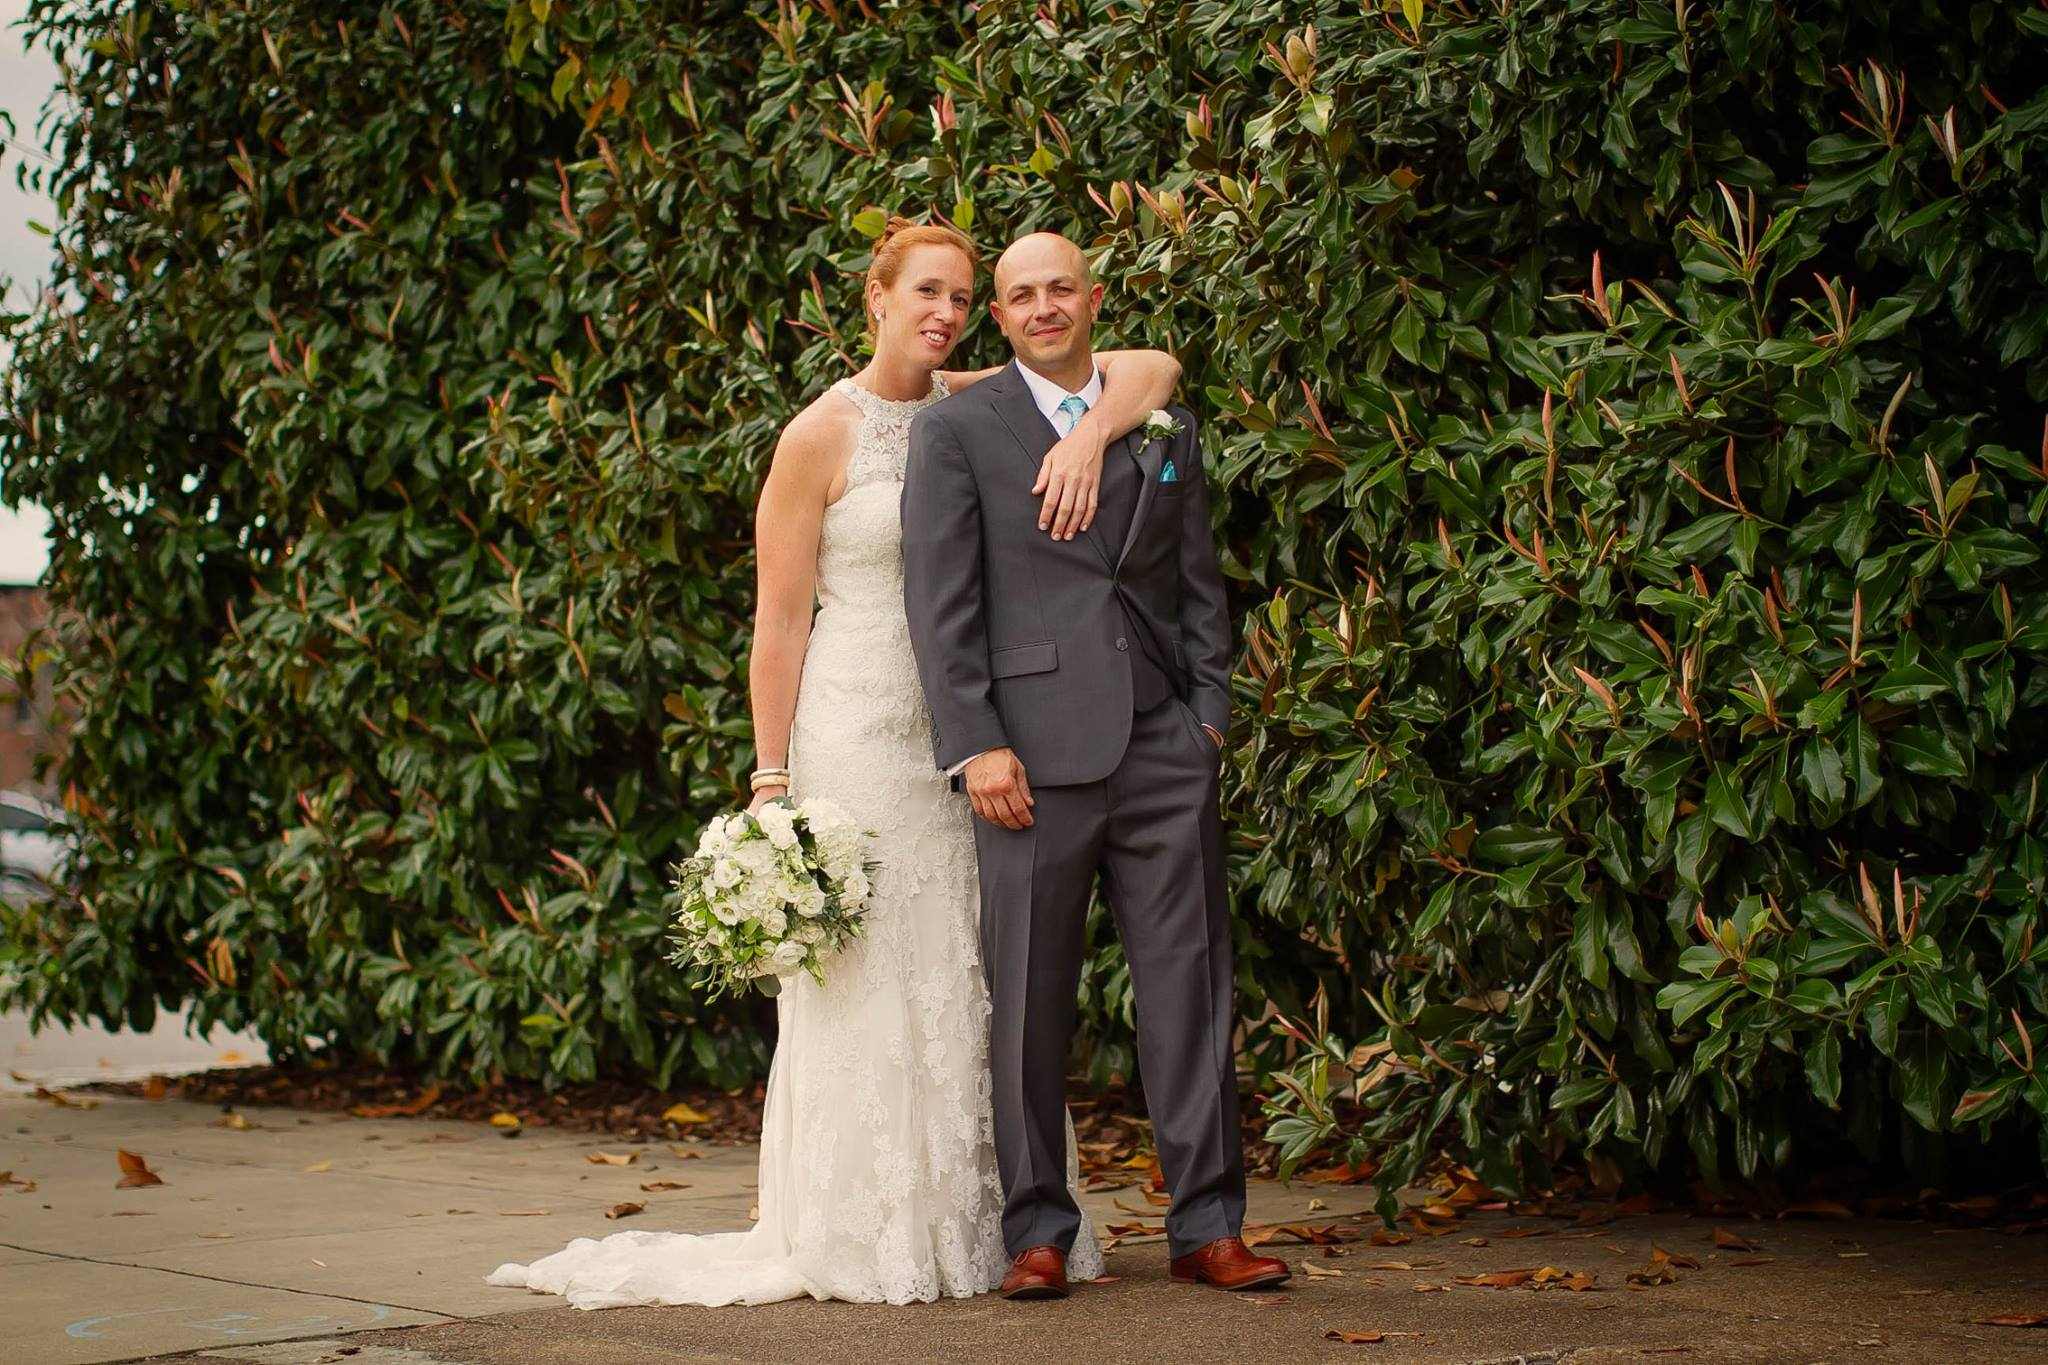 Chattanooga Real Wedding : Brunch at The Urban Lawn